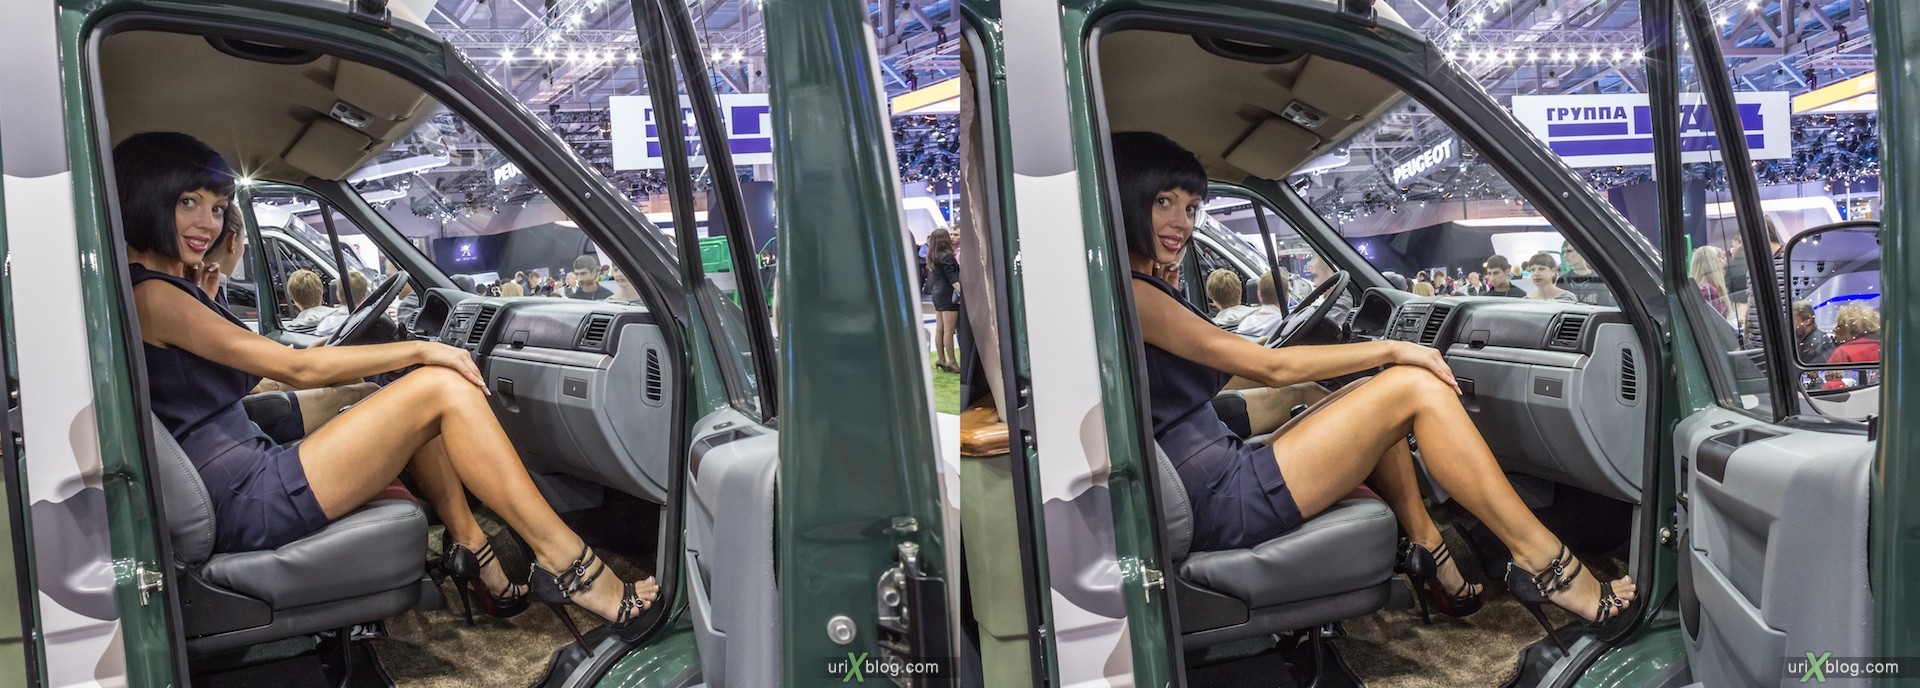 2012, ГАЗ, girl, model, Moscow International Automobile Salon, auto show, 3D, stereo pair, cross-eyed, crossview